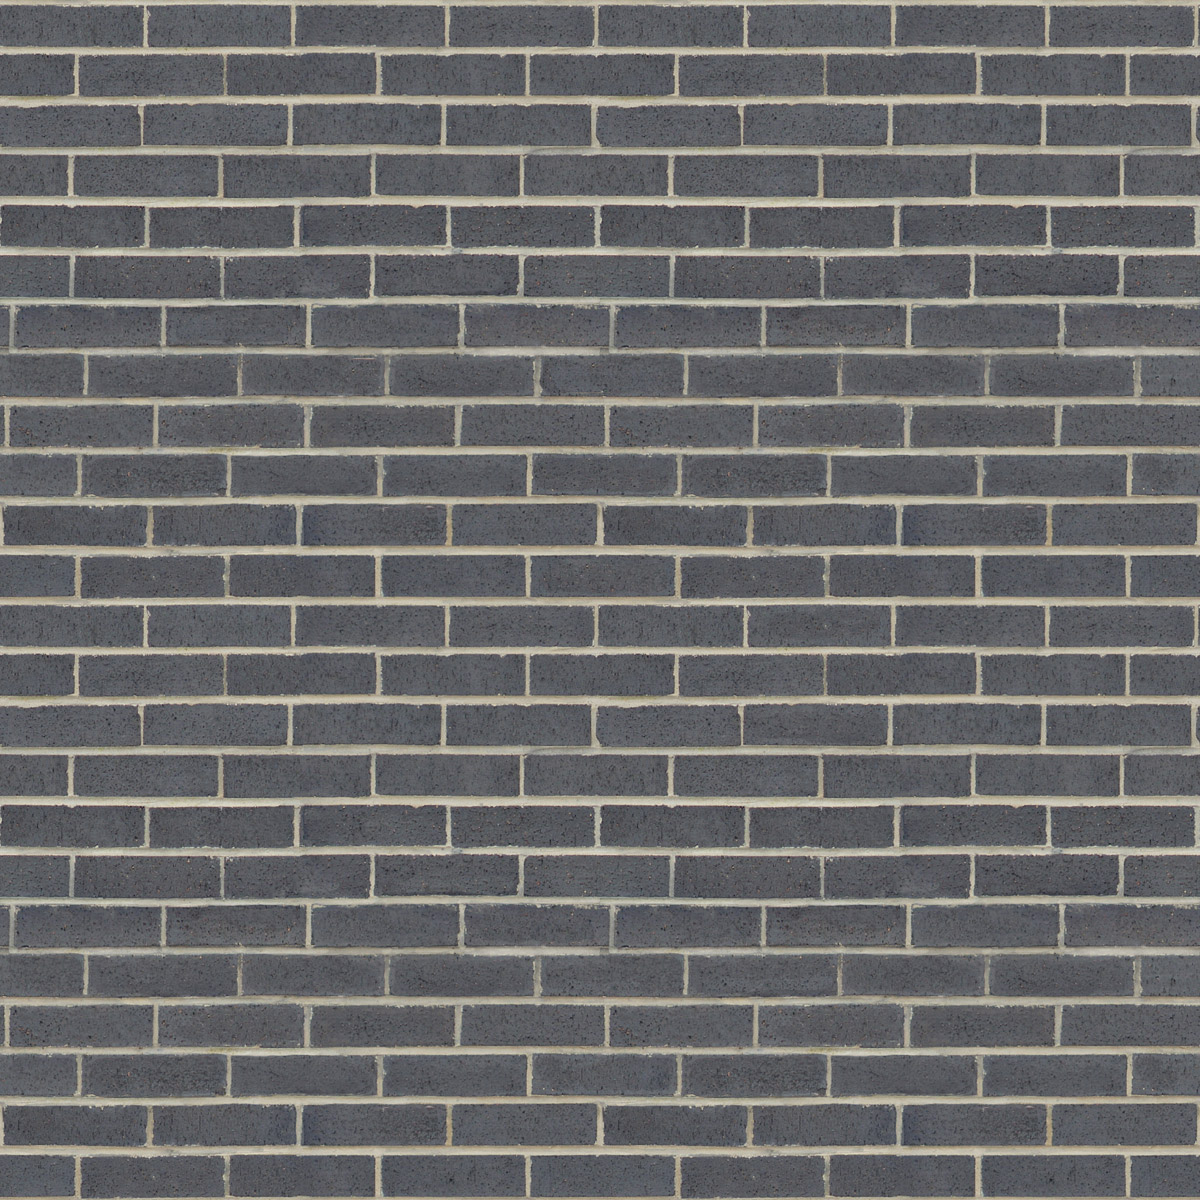 Gray Cartoon Brick Wall Texture : Tileable grey brick wall texture maps texturise free